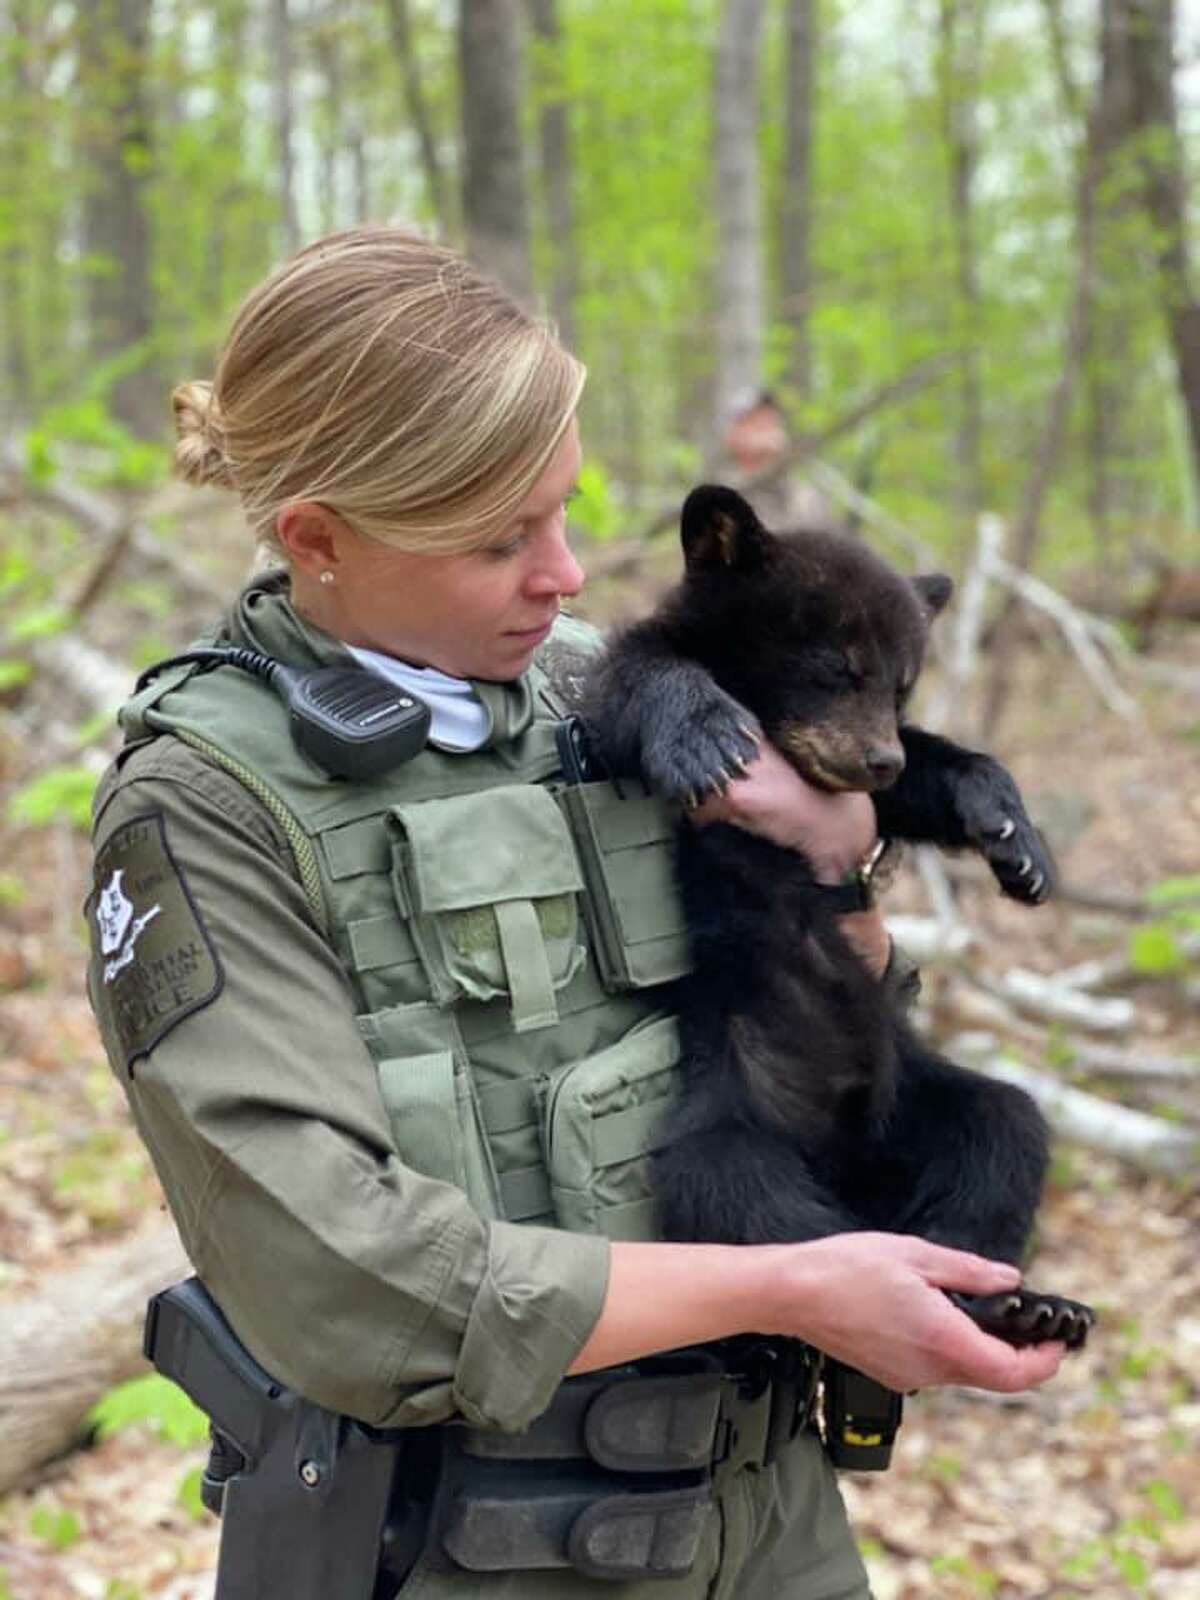 One of the two cubs relocated with its mother from a Canton, Conn., home on Friday, May 7, 2021.